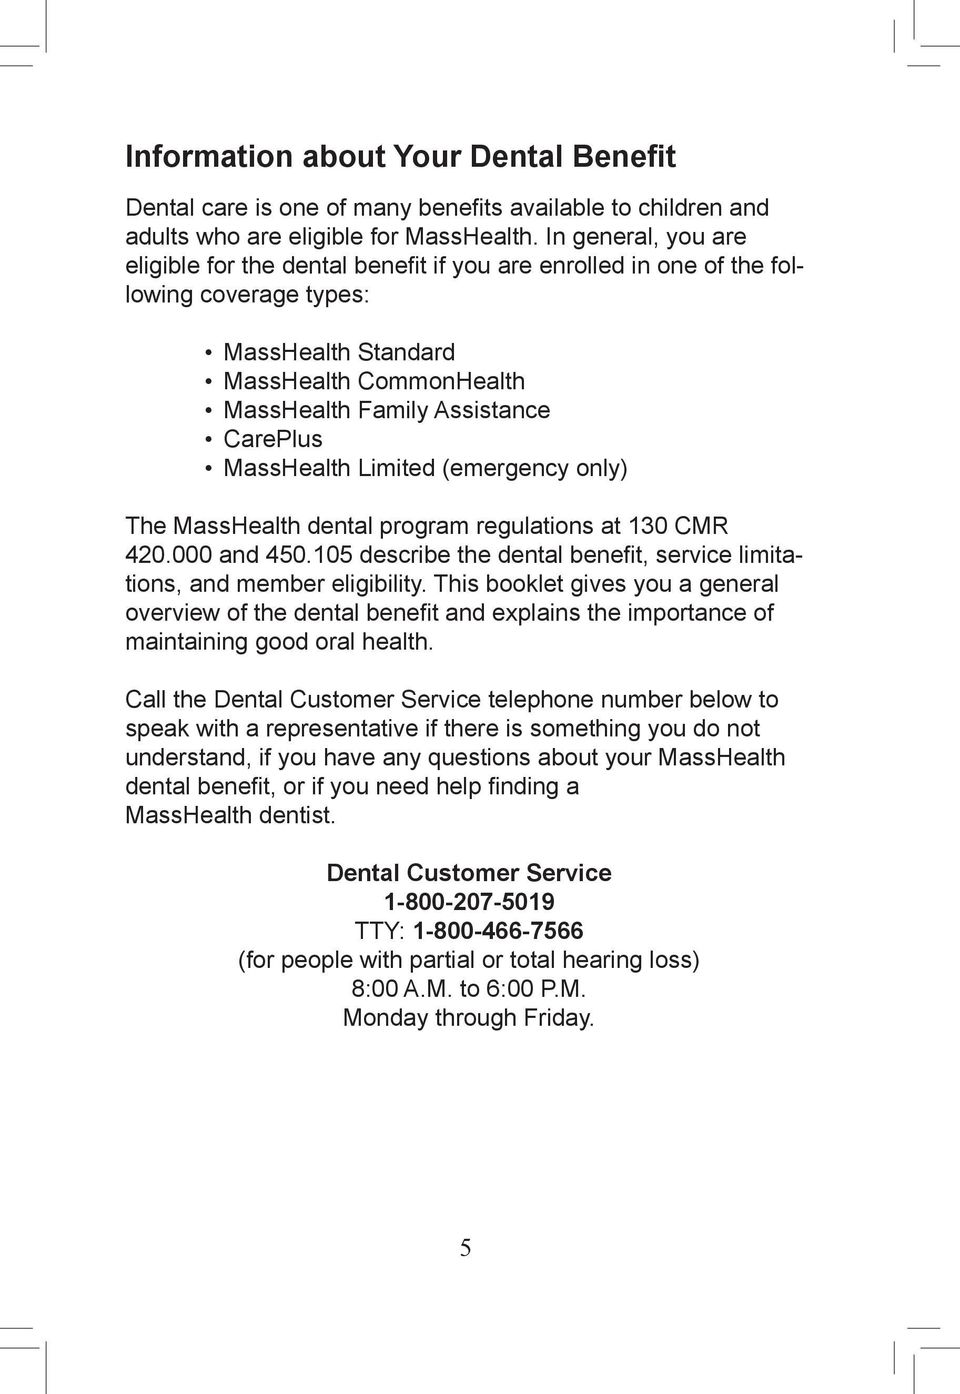 MassHealth Limited (emergency only) The MassHealth dental program regulations at 130 CMR 420.000 and 450.105 describe the dental benefit, service limitations, and member eligibility.